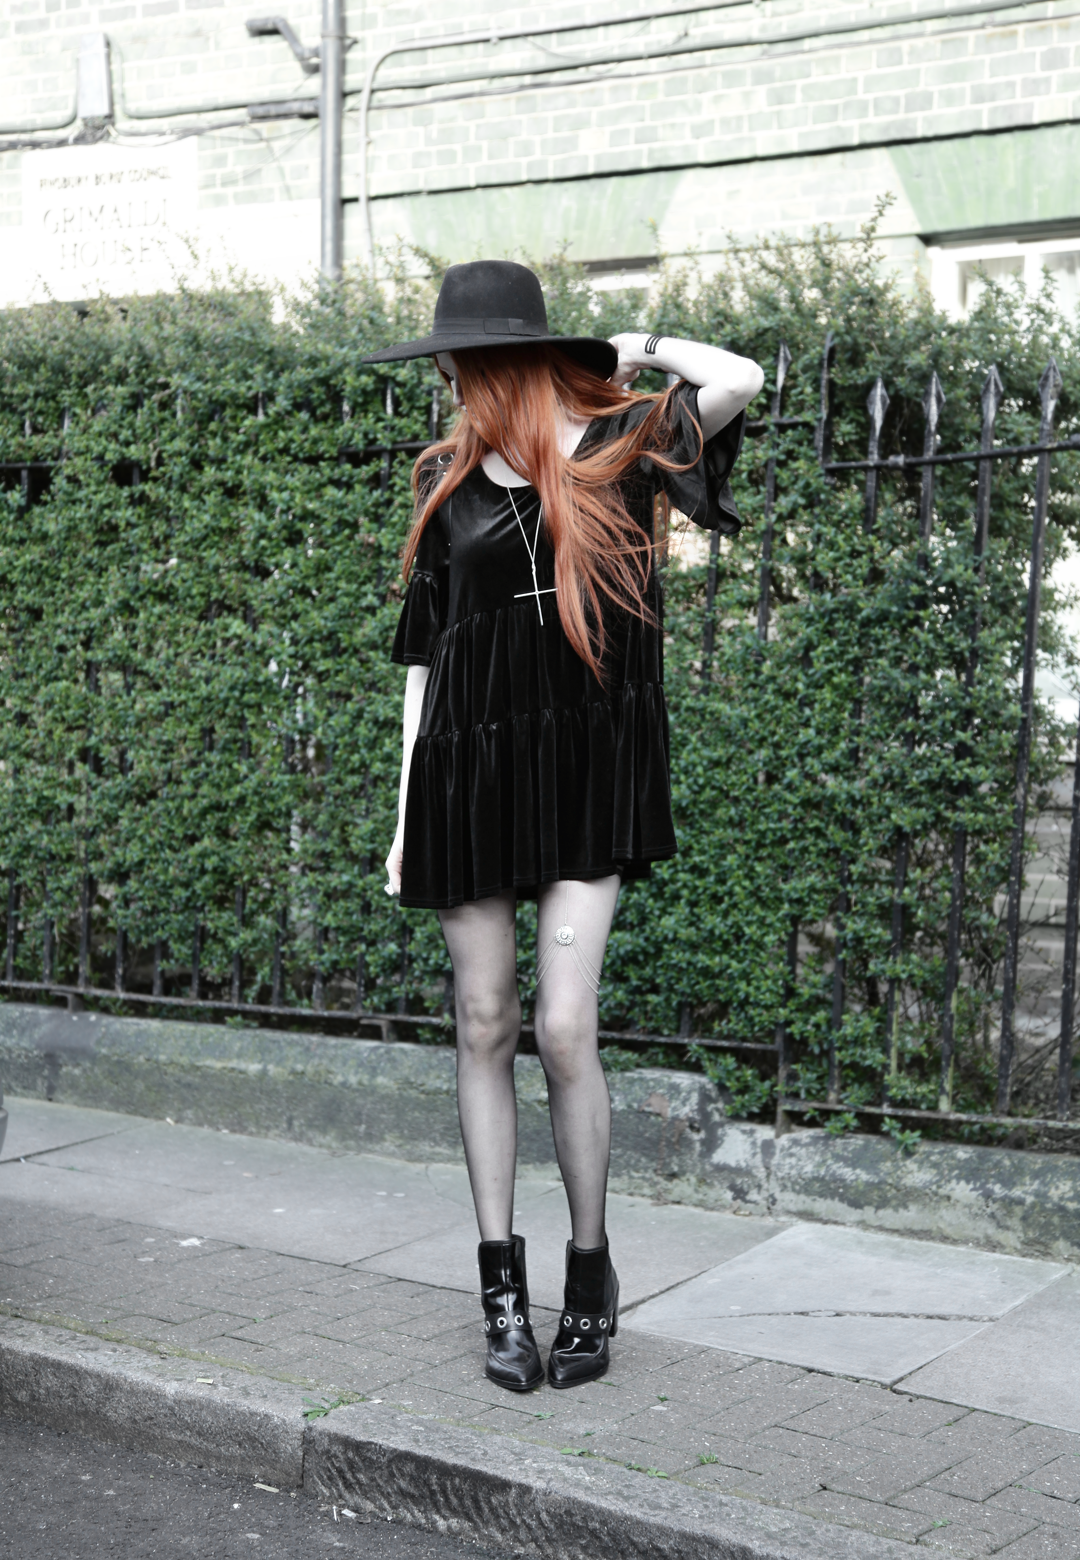 Olivia Emily wears Asos Reclaimed Vintage tiered black velvet dress, Killstar Witch Brim hat, River Island leg chain, and Asos eyelet boots